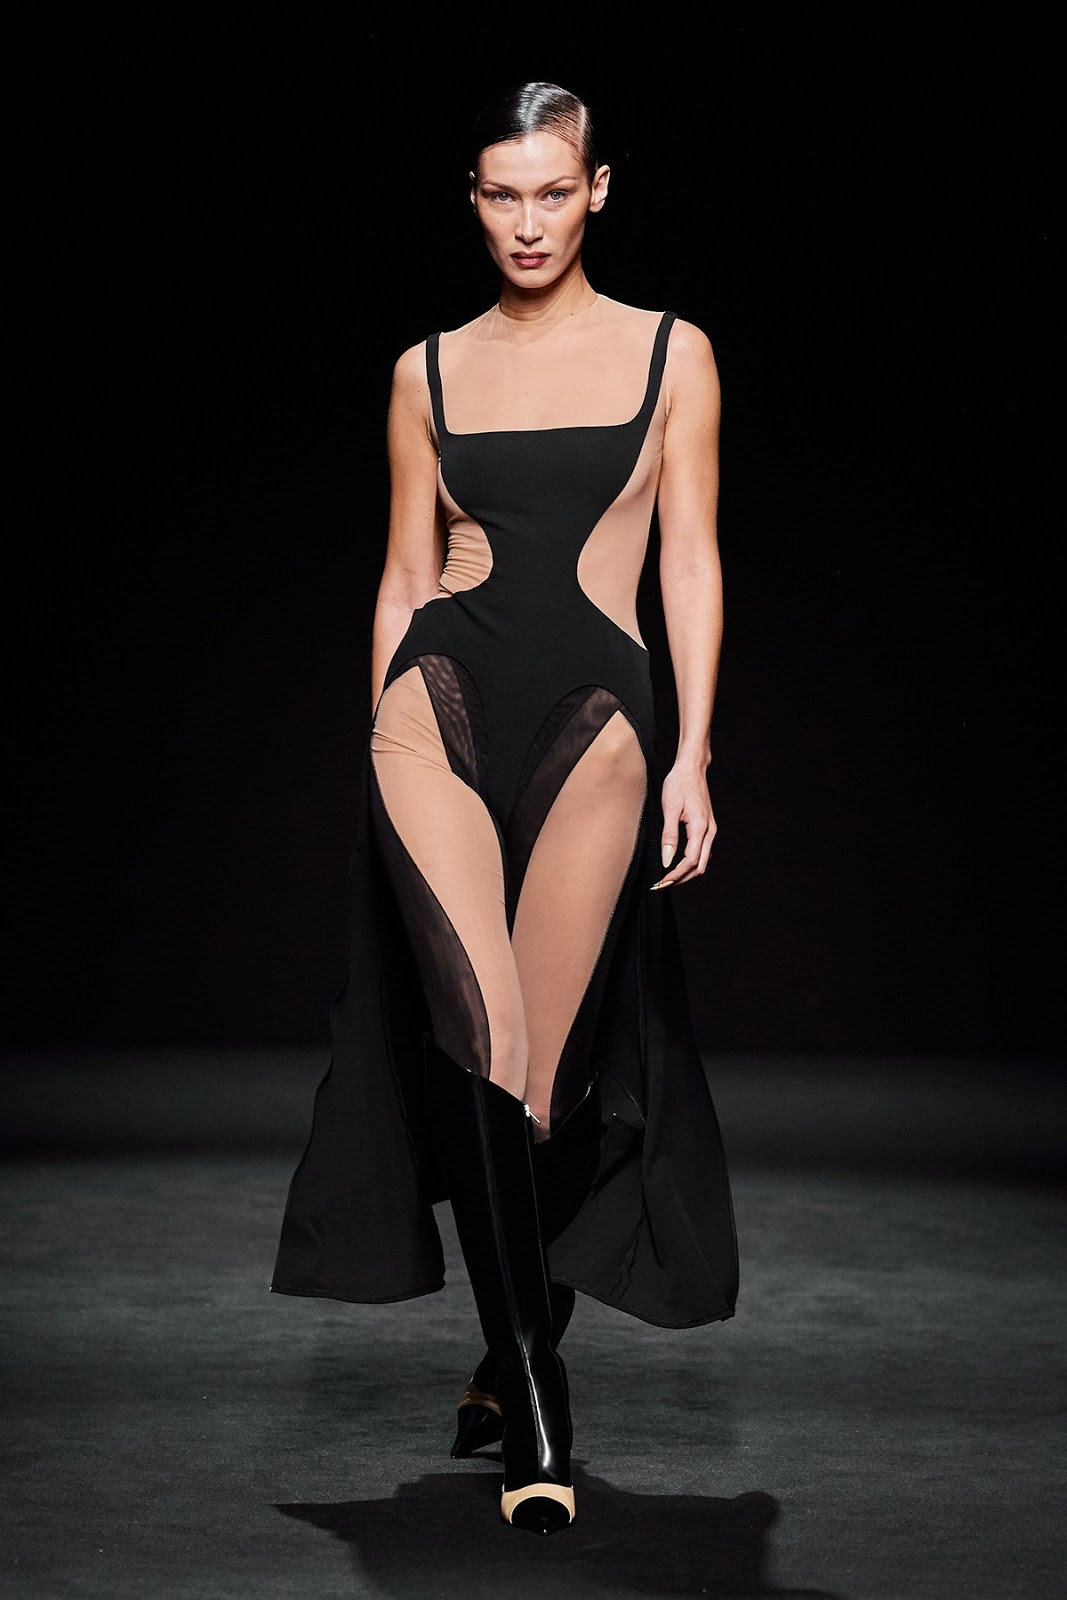 Bella Hadid sizzles in slinky black gown with risqué nude inserts at Mugler Paris Fashion Week show